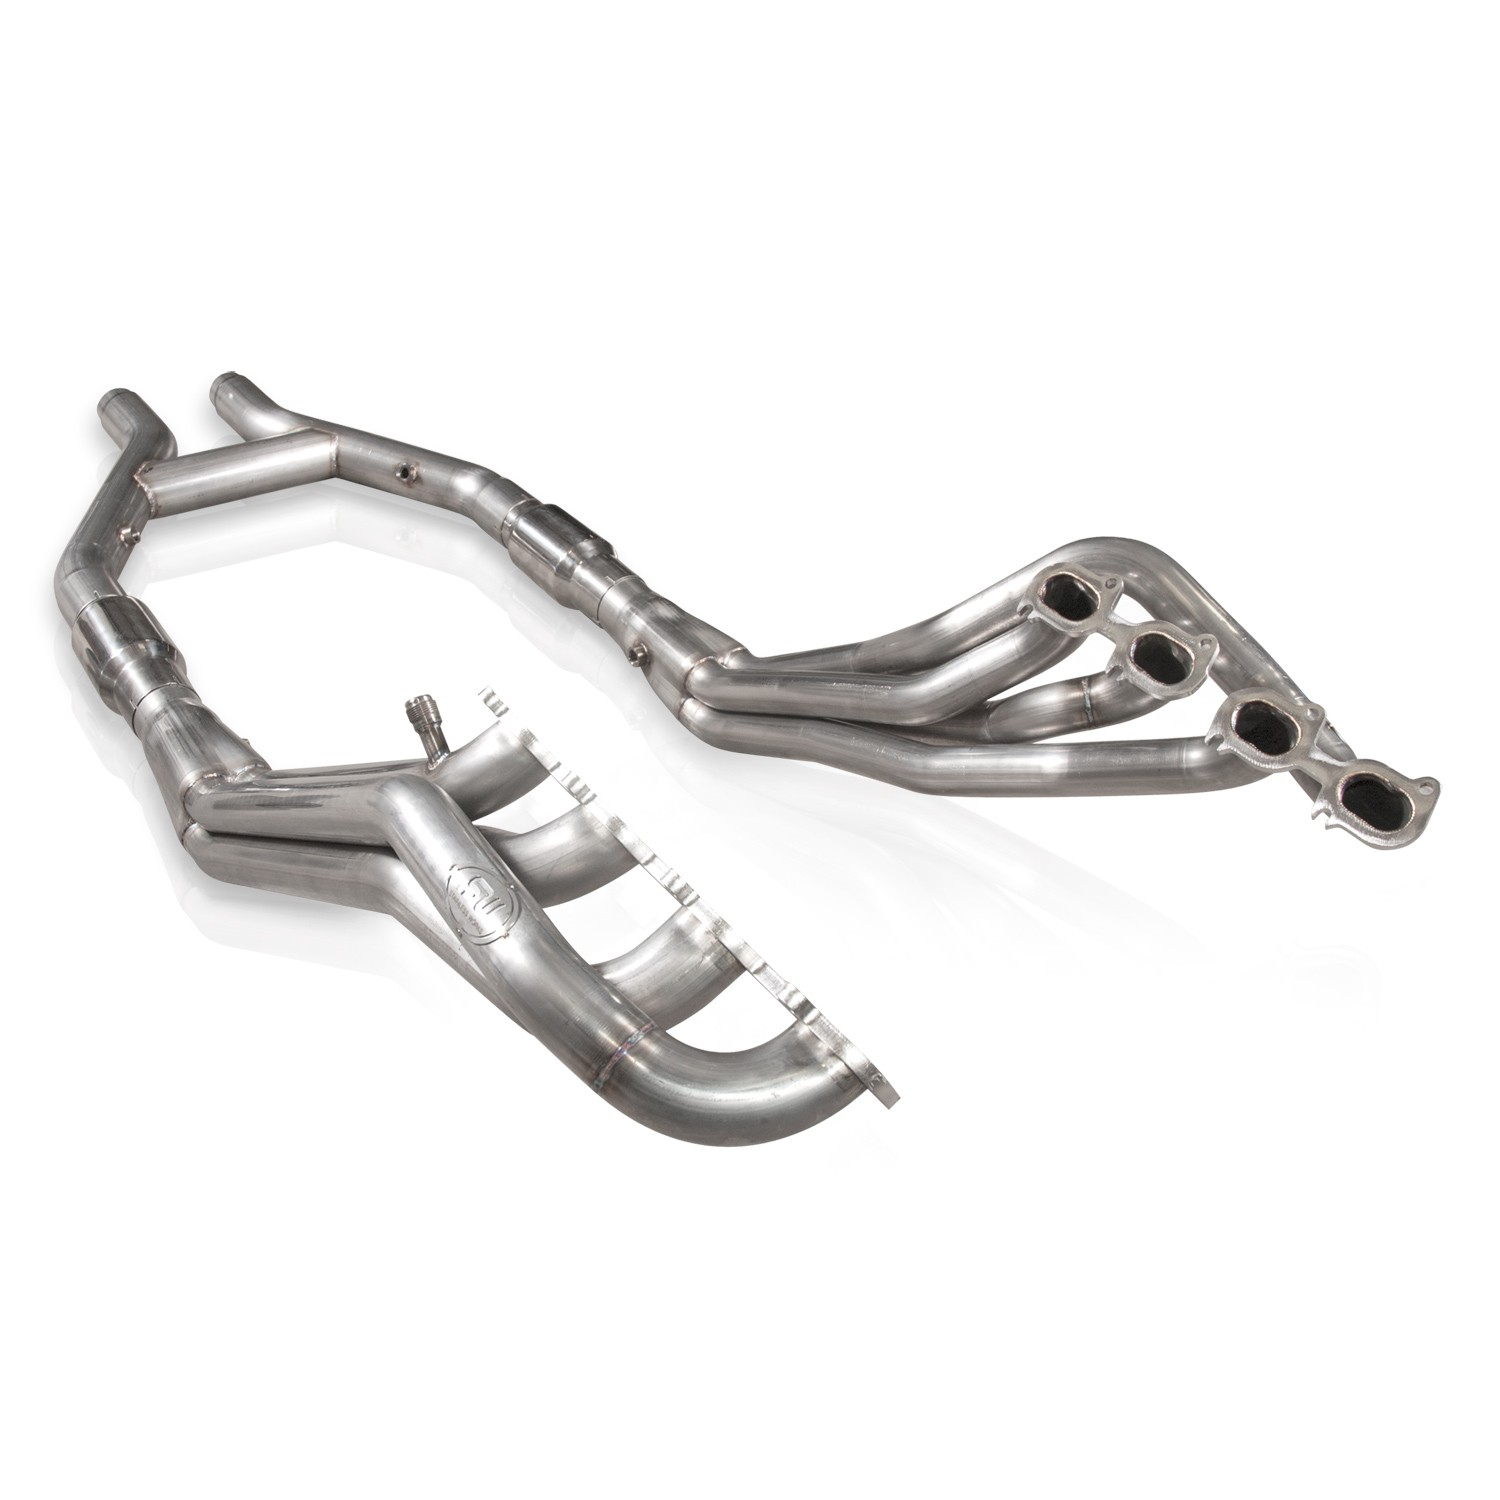 Stainless Works 2011-2014 Shelby GT500 Headers 1-7/8in